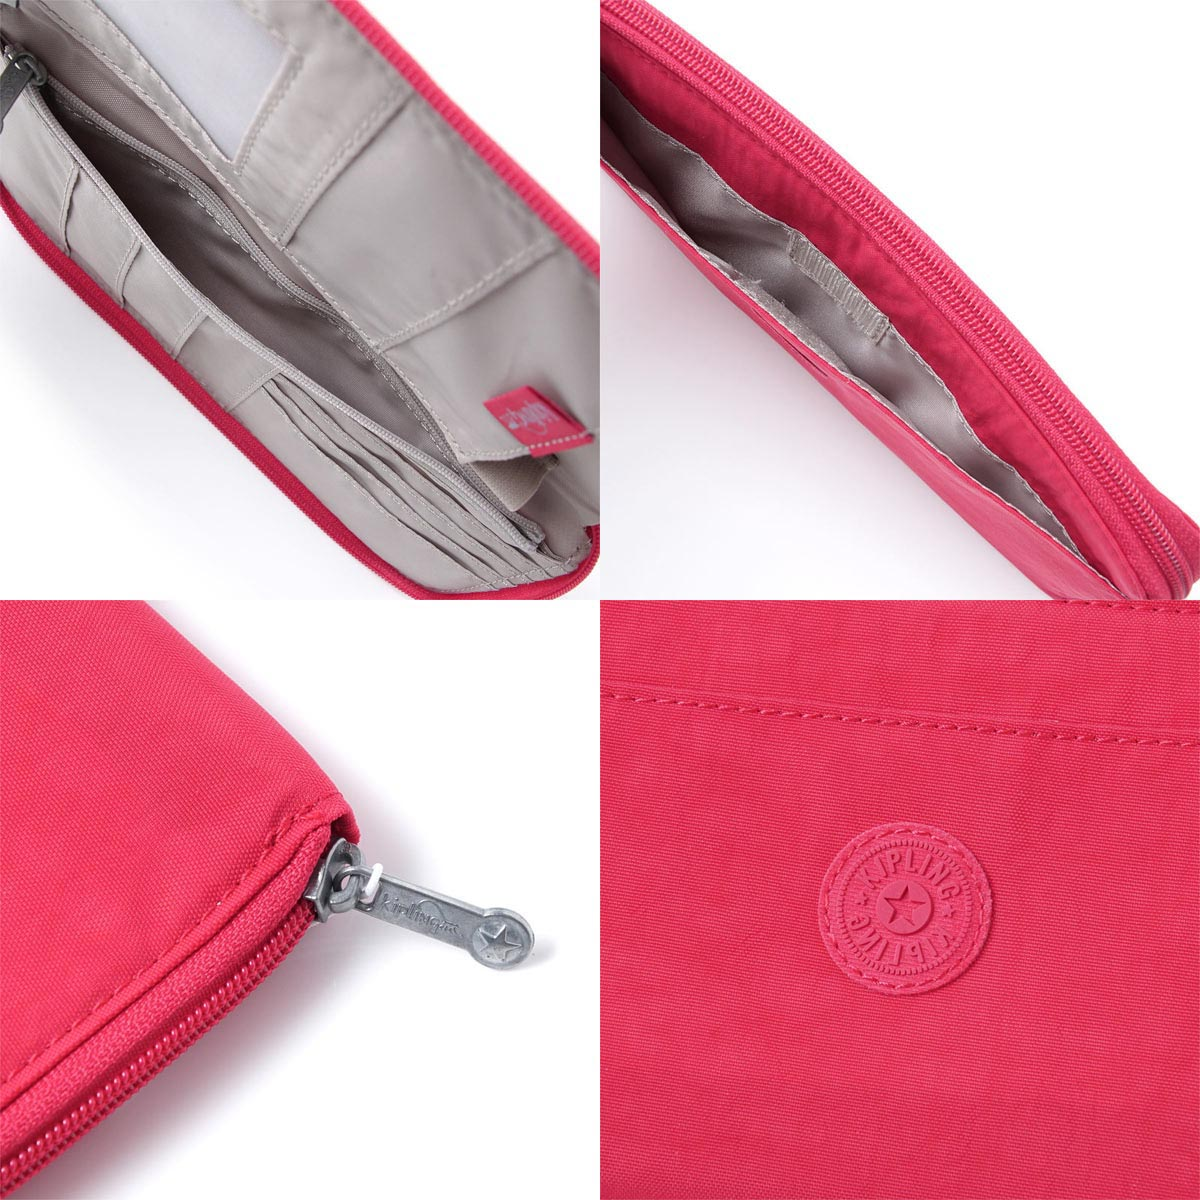 977cee4ec7bb キプリング kipling travel case passport case Lady's trip gift present k13255 g46  TRAVEL DOC